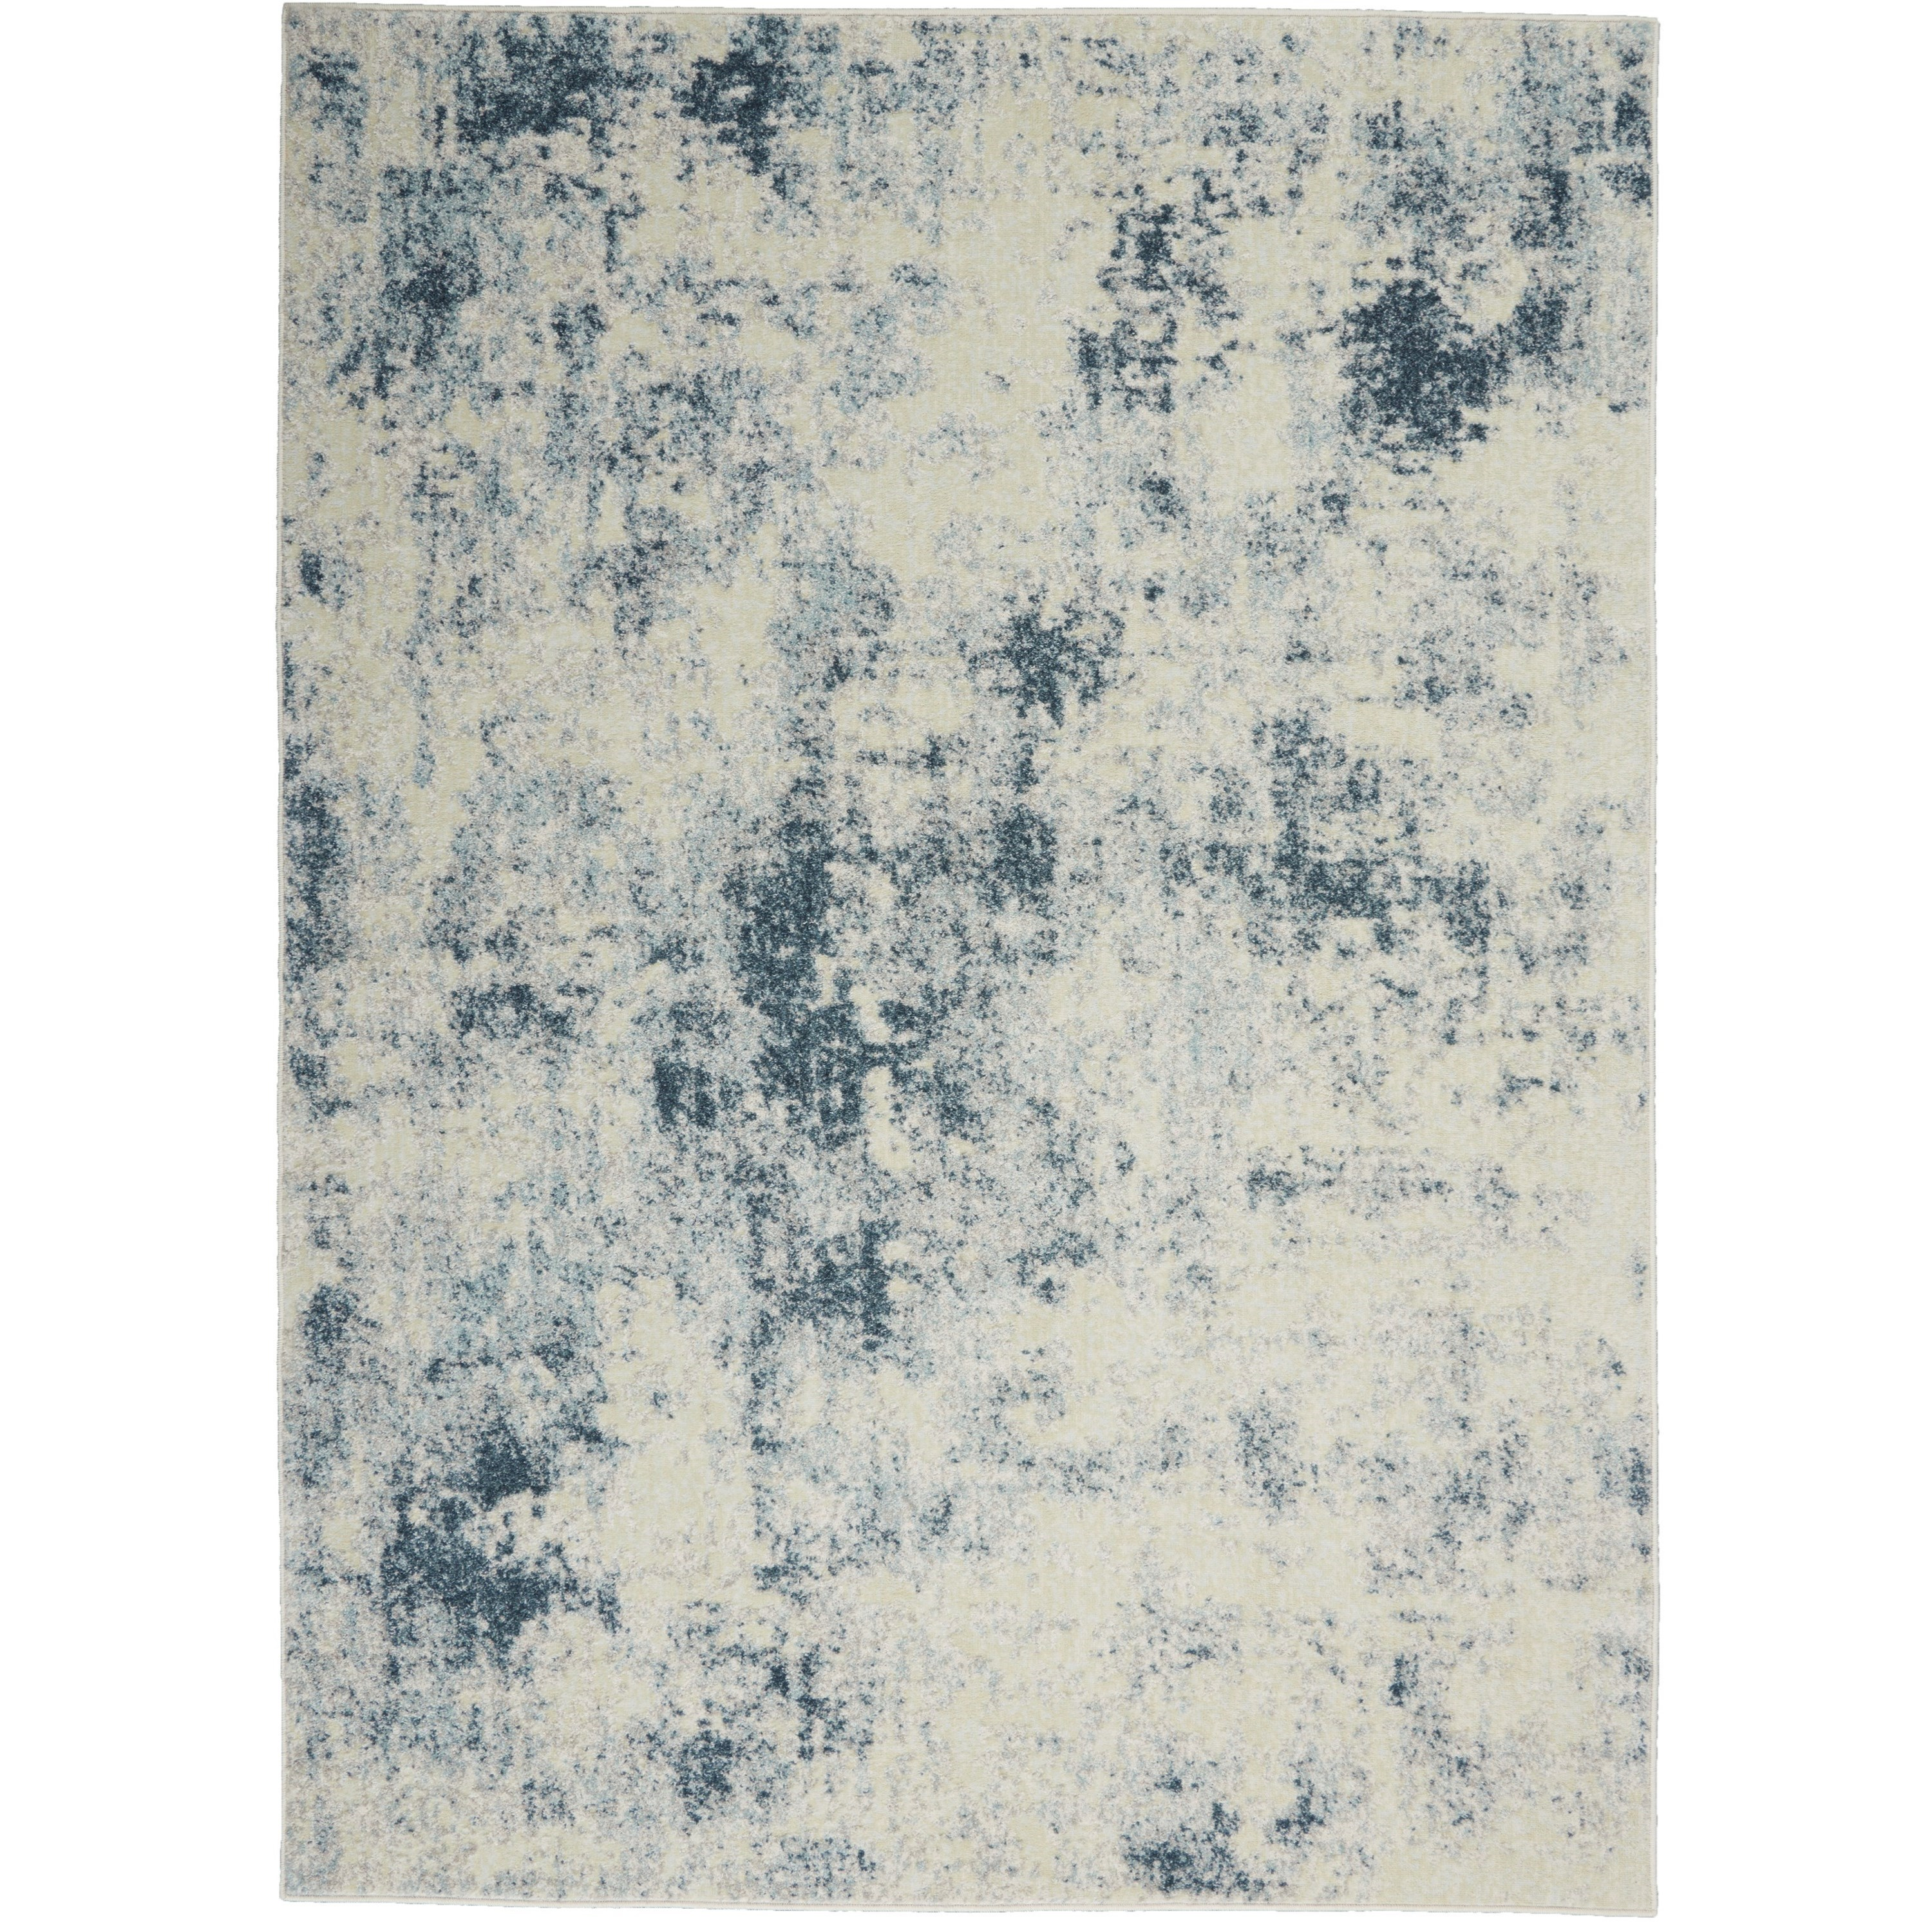 Trance 2020 5' x 7' Rug by Nourison at Sprintz Furniture